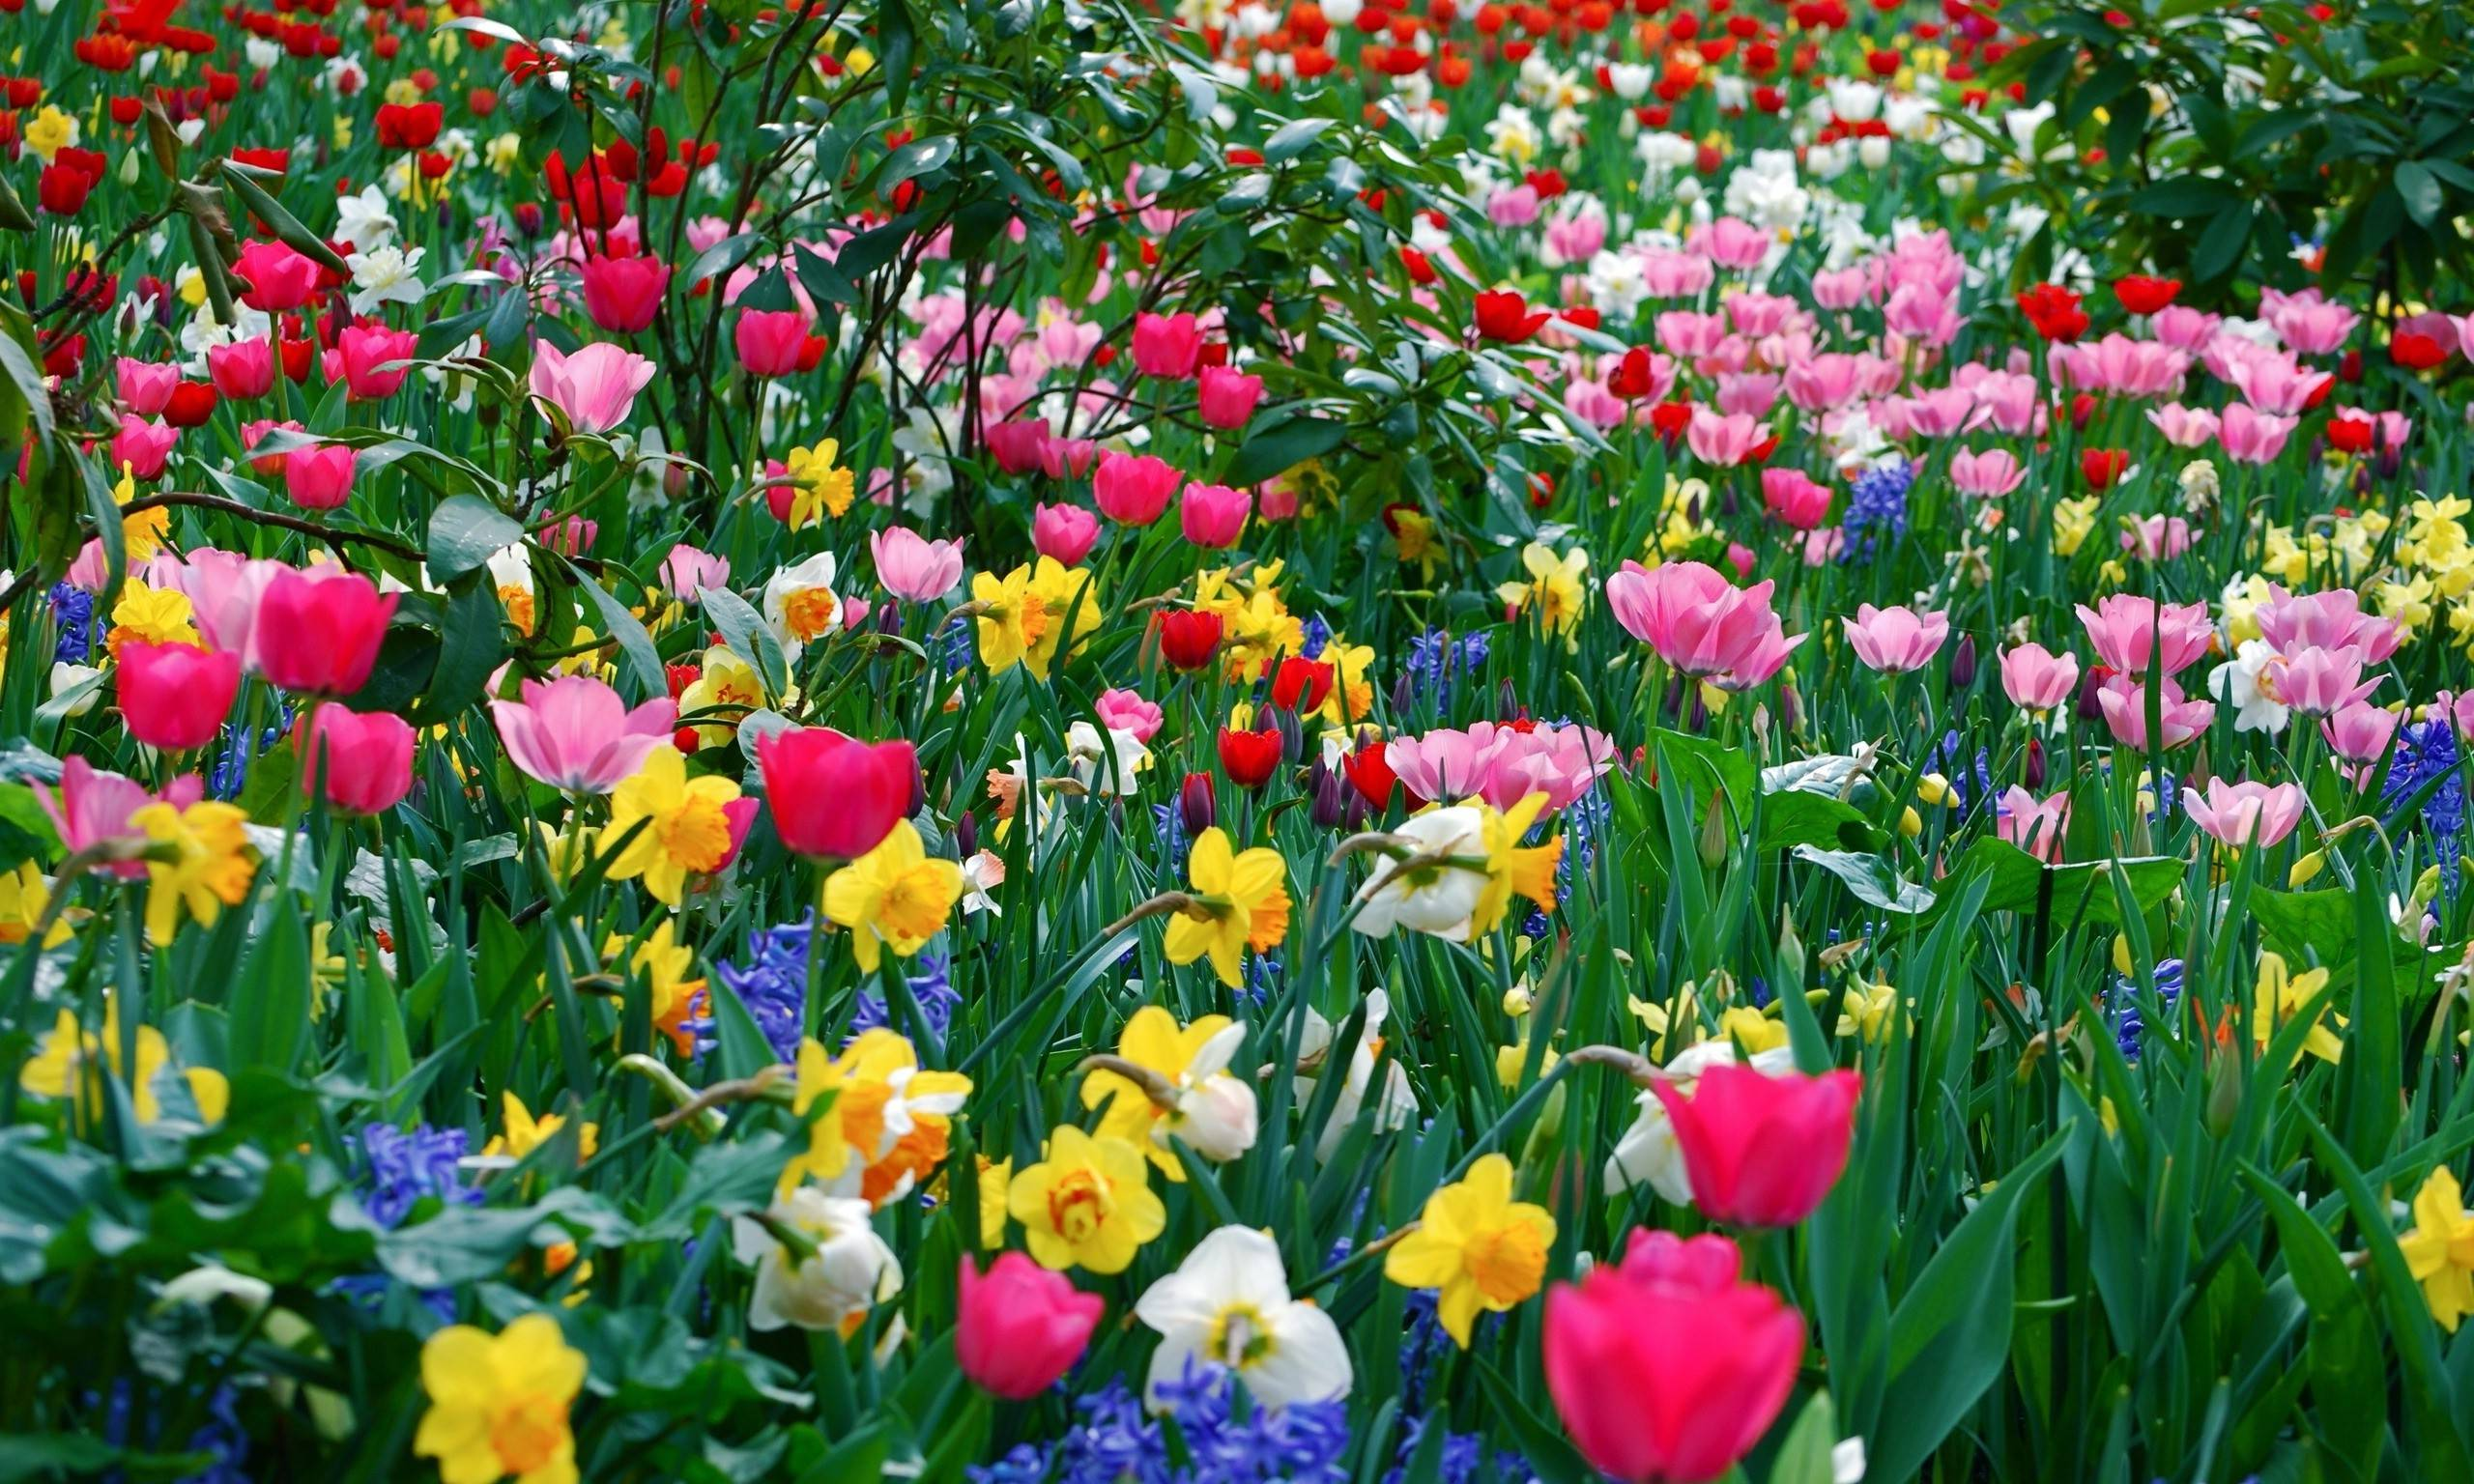 Pictures of spring flowers desktop backgrounds kidskunstfo spring flower wallpaper backgrounds wallpaper cave mightylinksfo